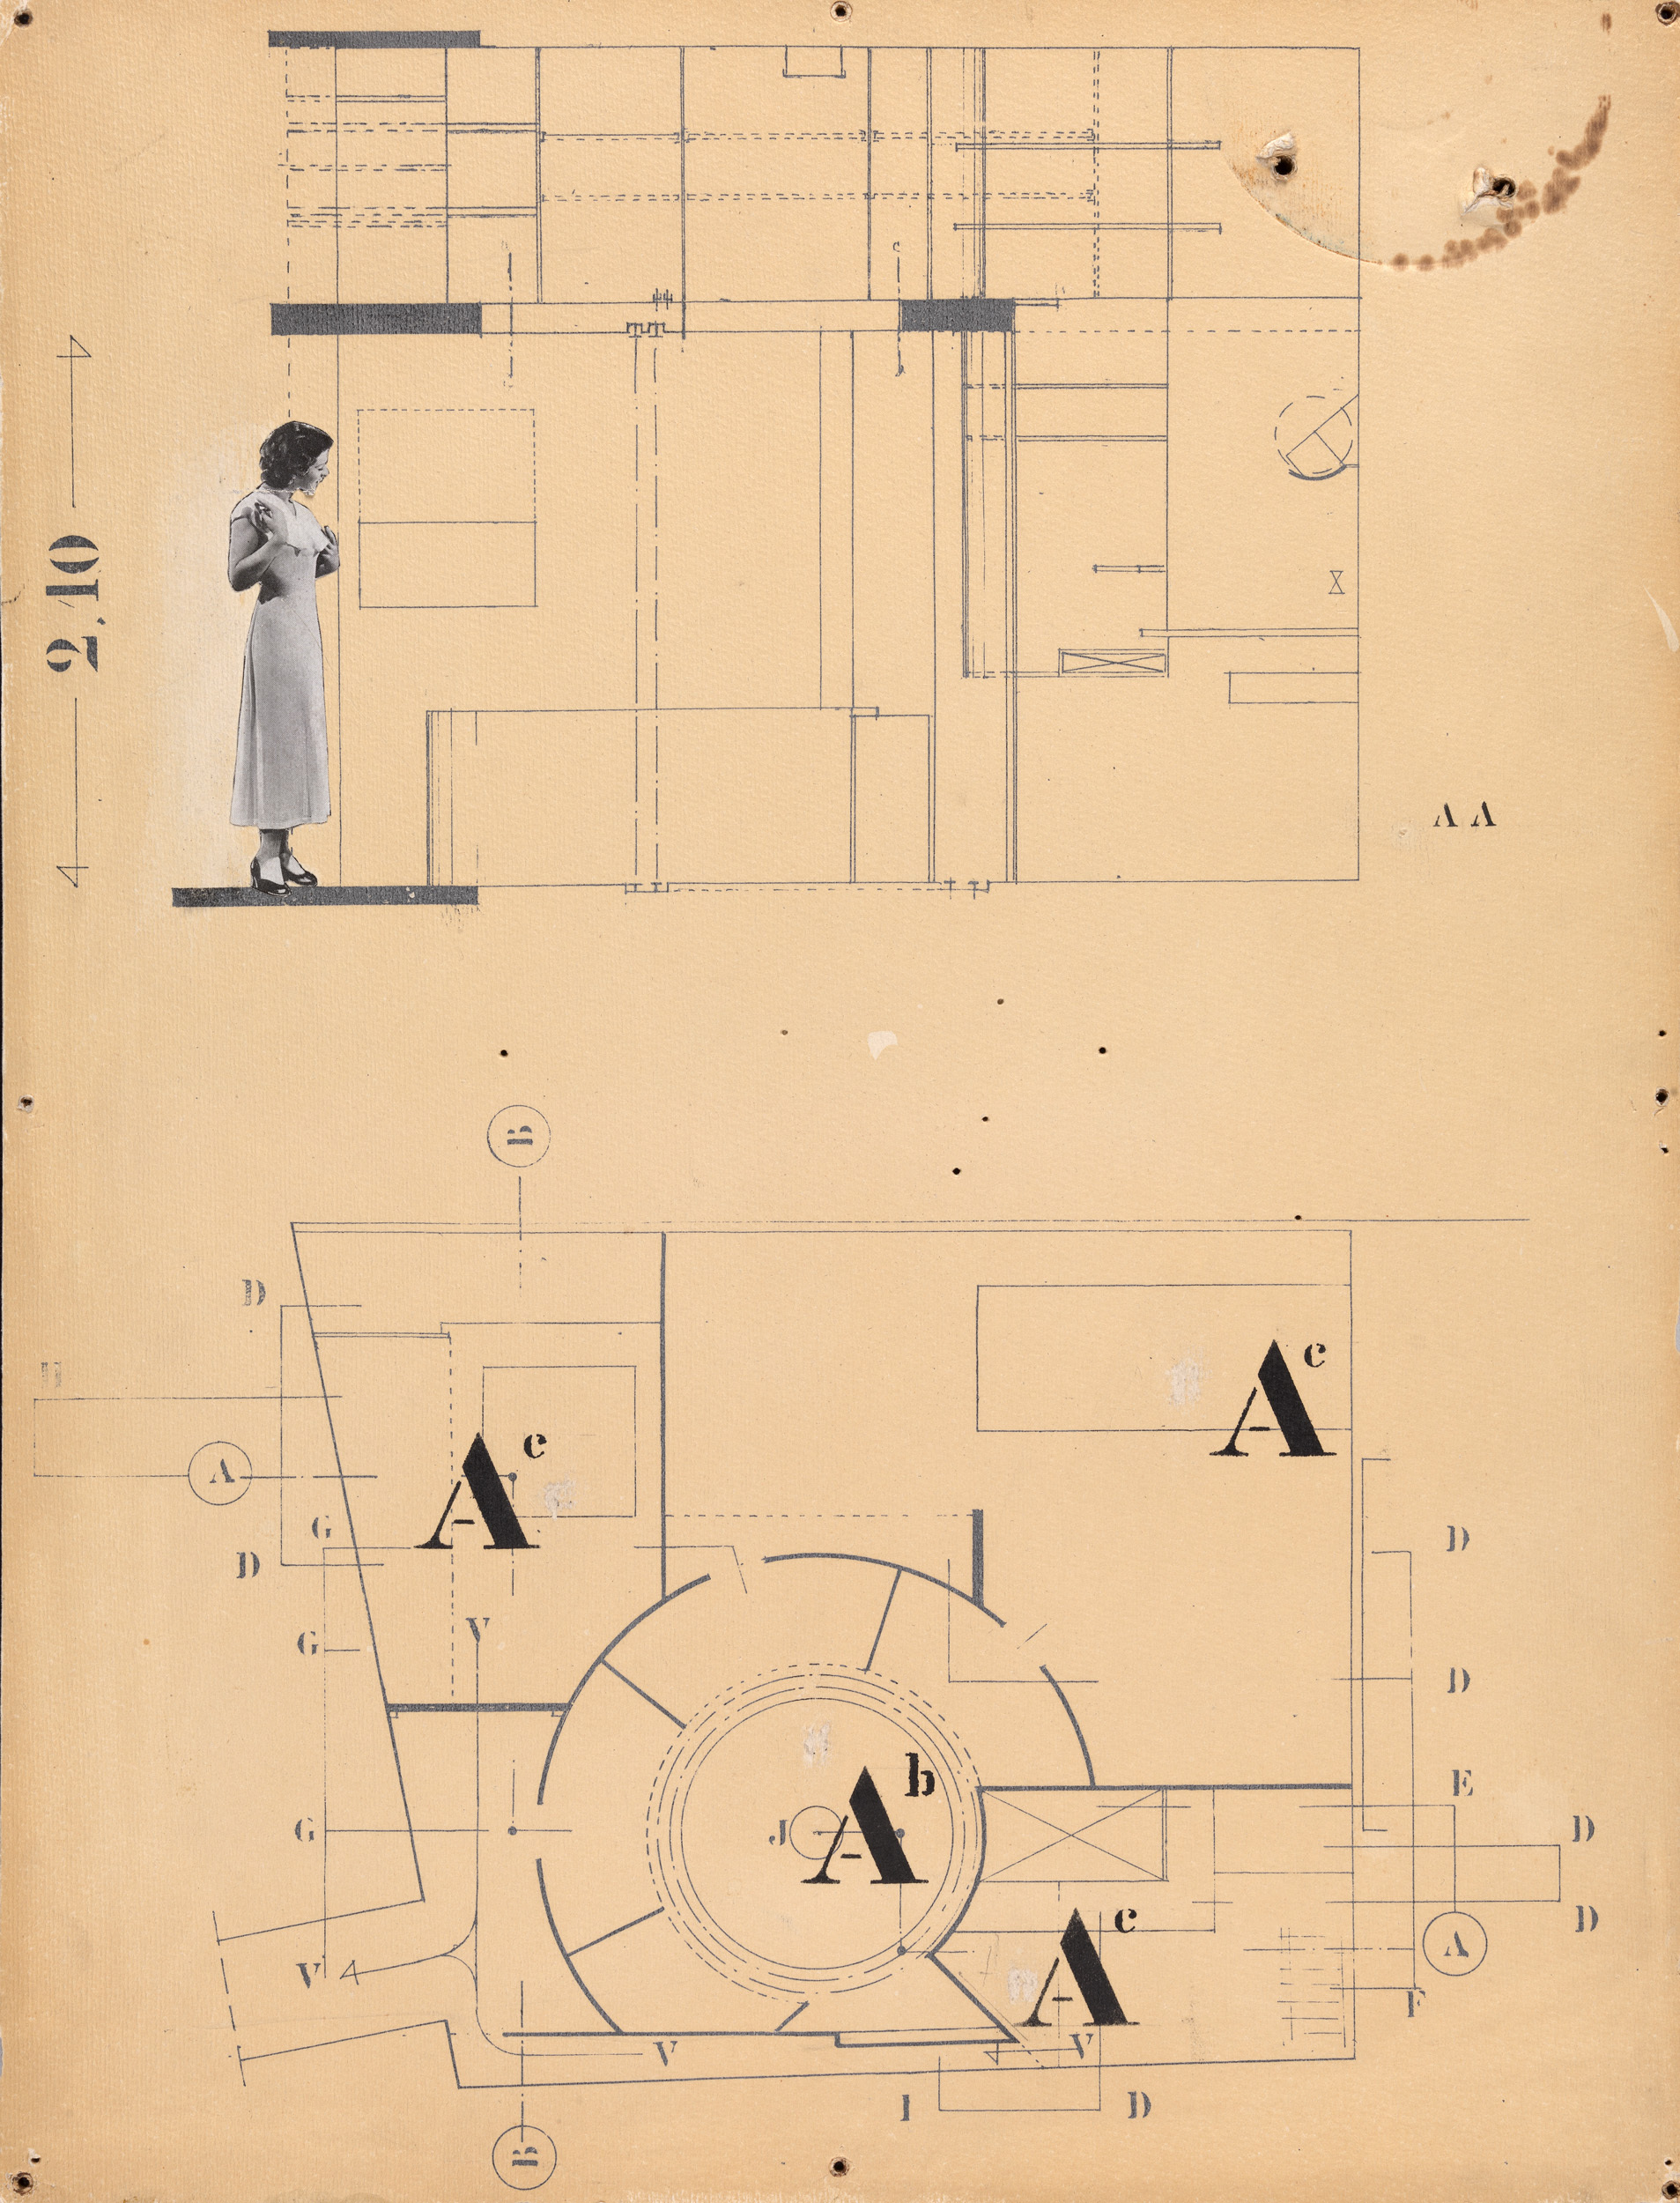 eileen gray e1027 floor plan - photo #14